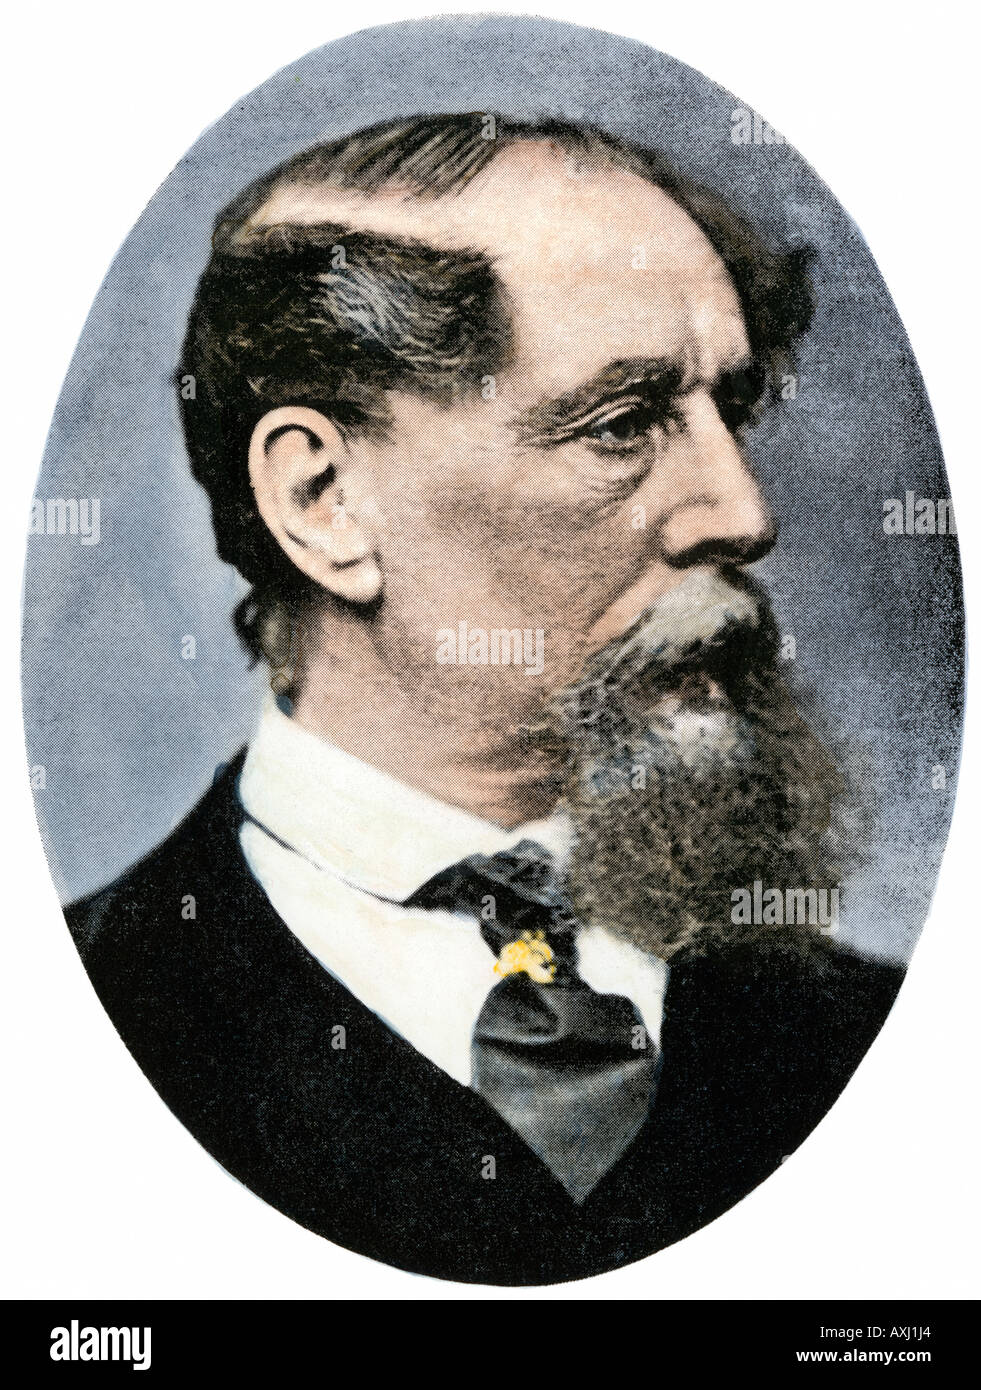 Charles Dickens. Hand-colored halftone of a photograph - Stock Image